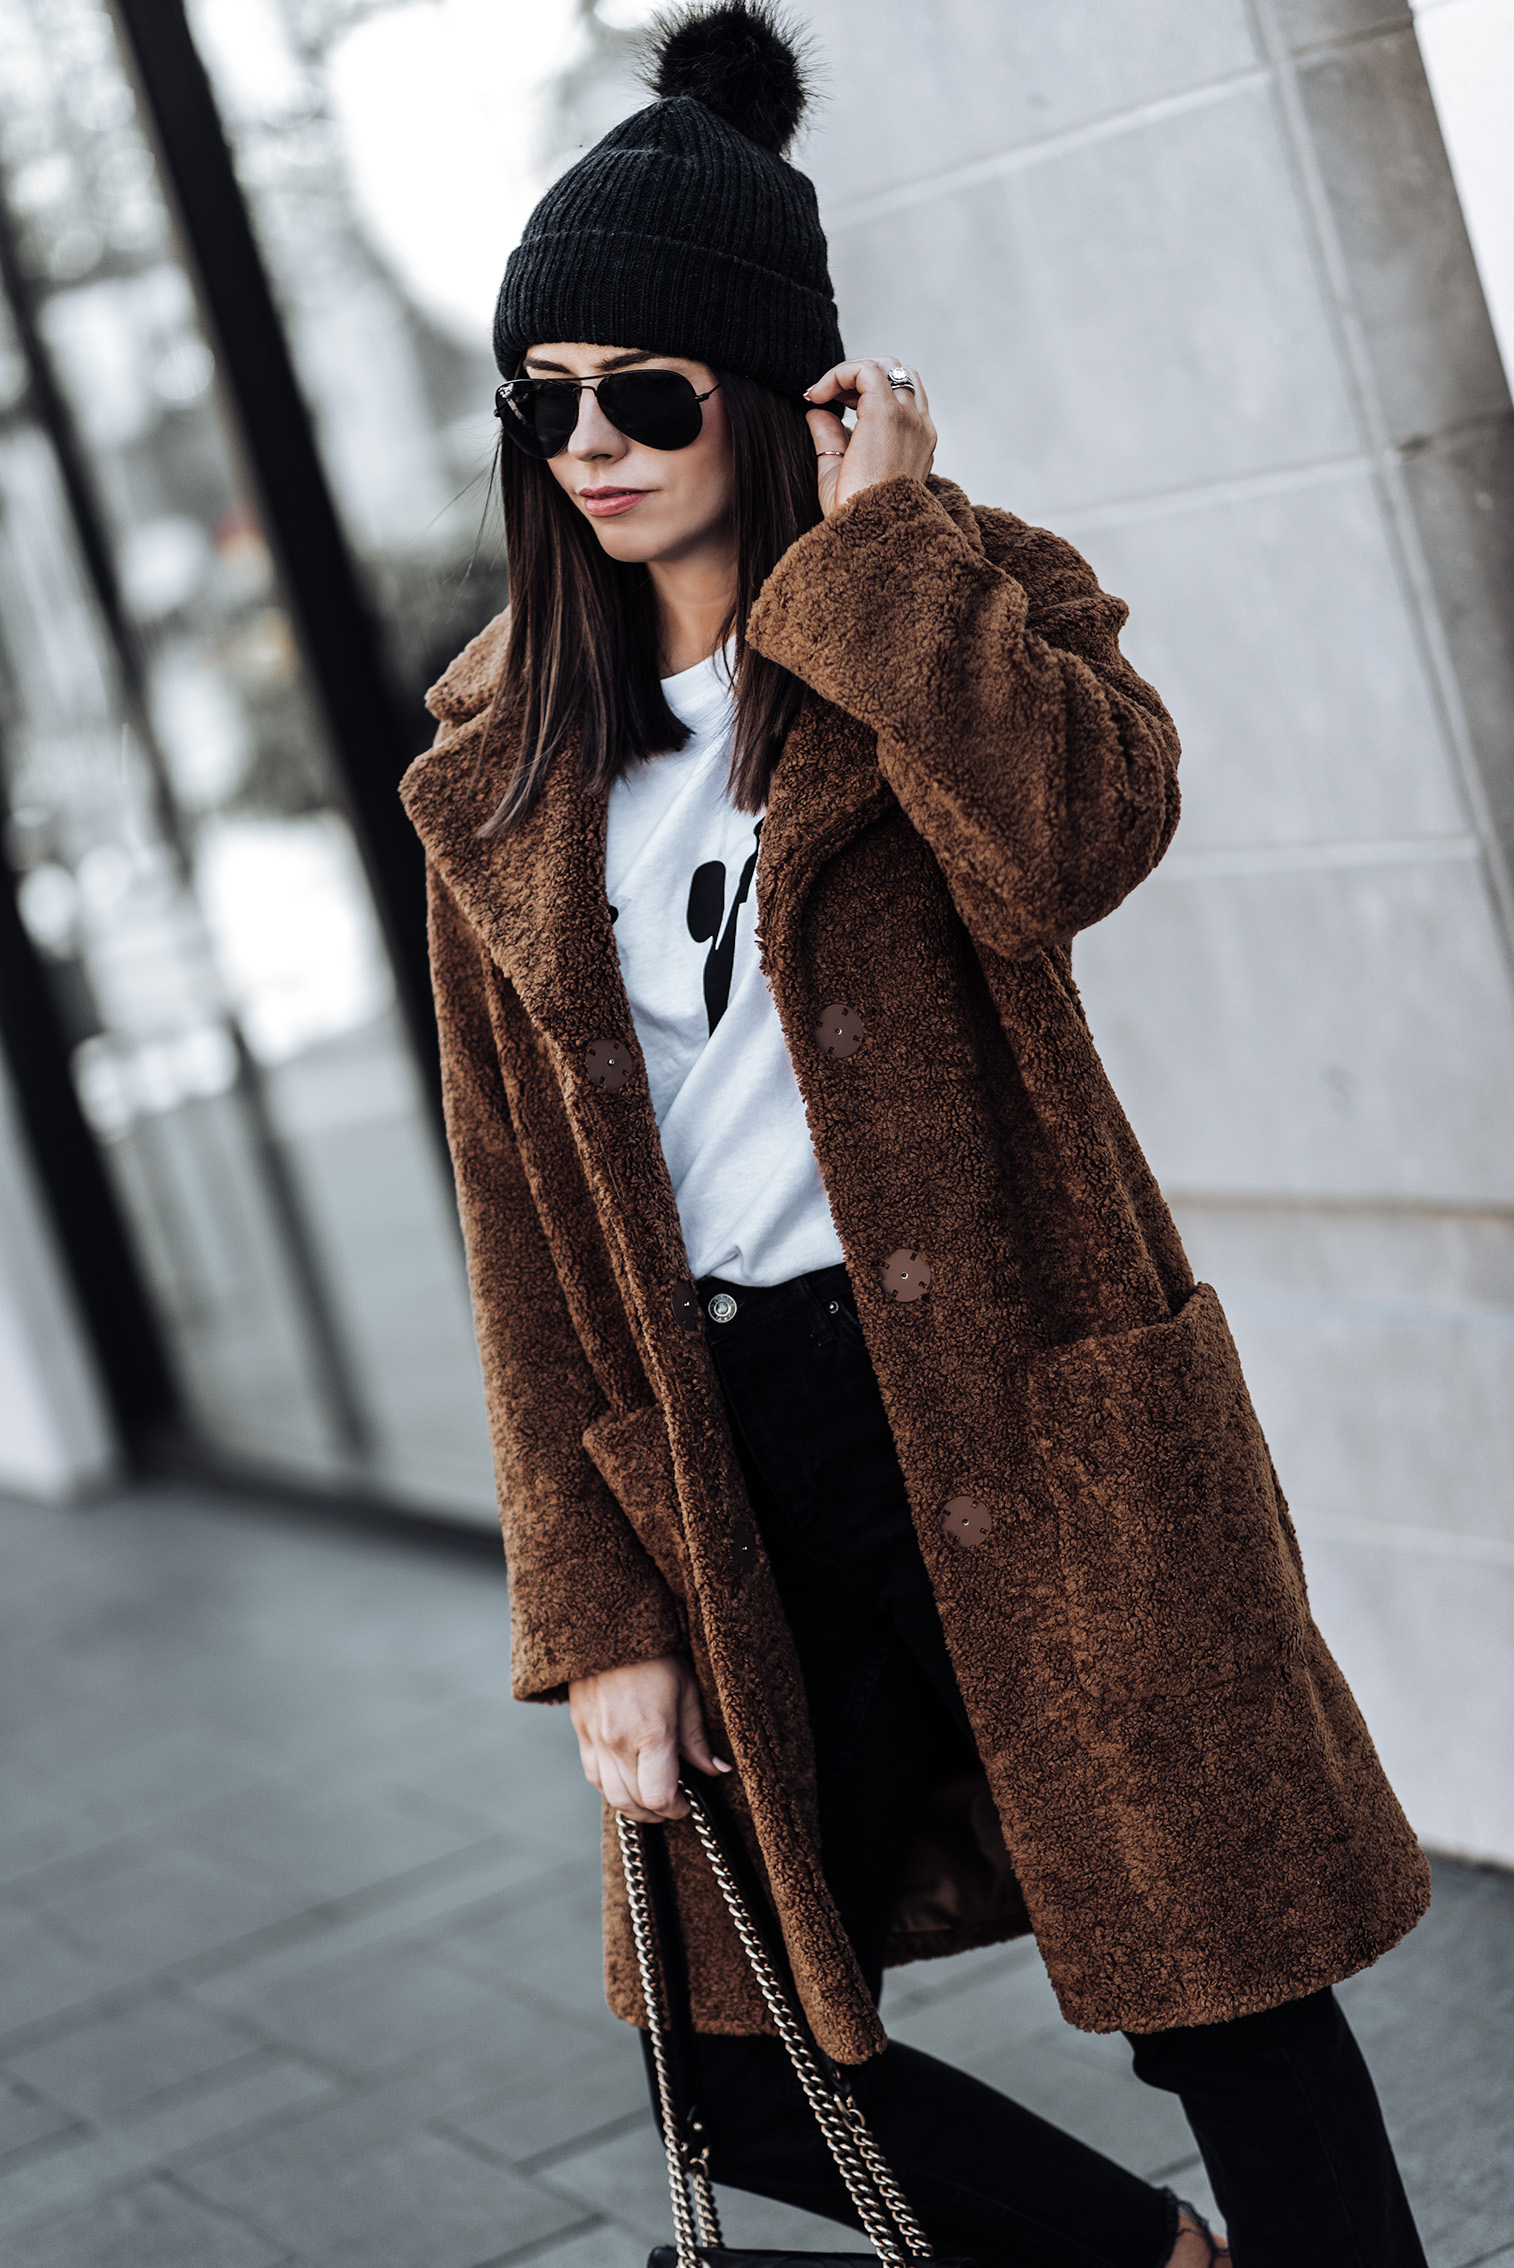 Click to shop the exact look! Teddy Coat (from ASOS, identical here) | Black denim jeans | Les Girls Les Boys Tee | Old Skool Vans | #teddycoatoutfits #winteroutfits #fallfashionoutfits #beanieoutfits